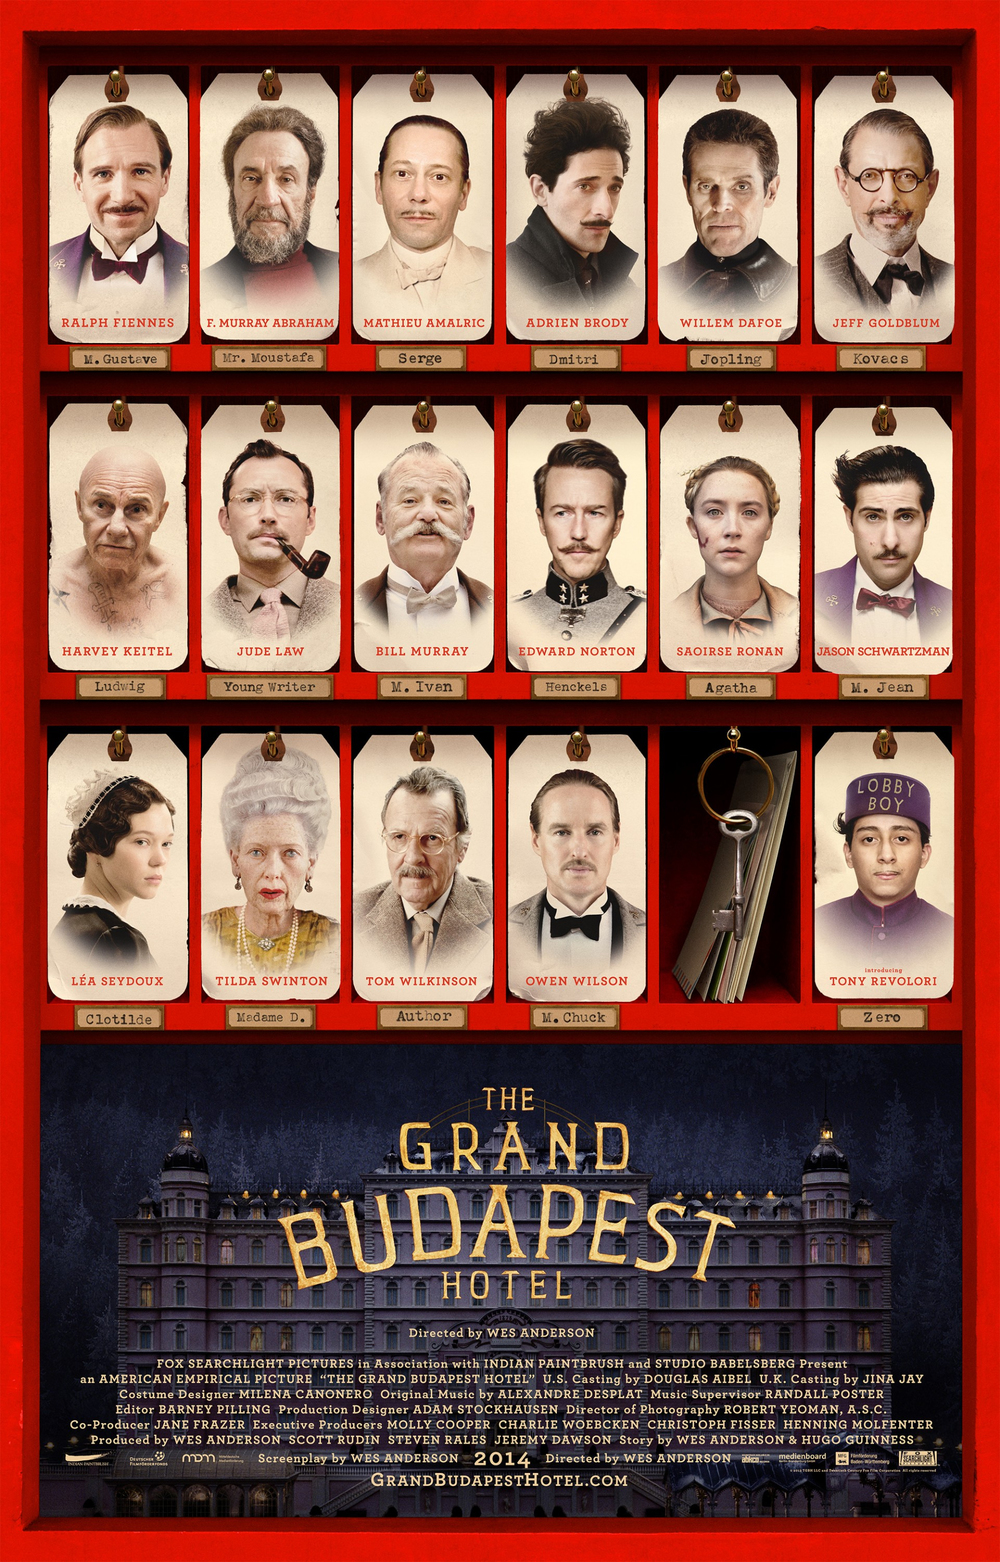 trailer-for-the-grand-budapest-hotel-introduces-cast-of-characters.jpg